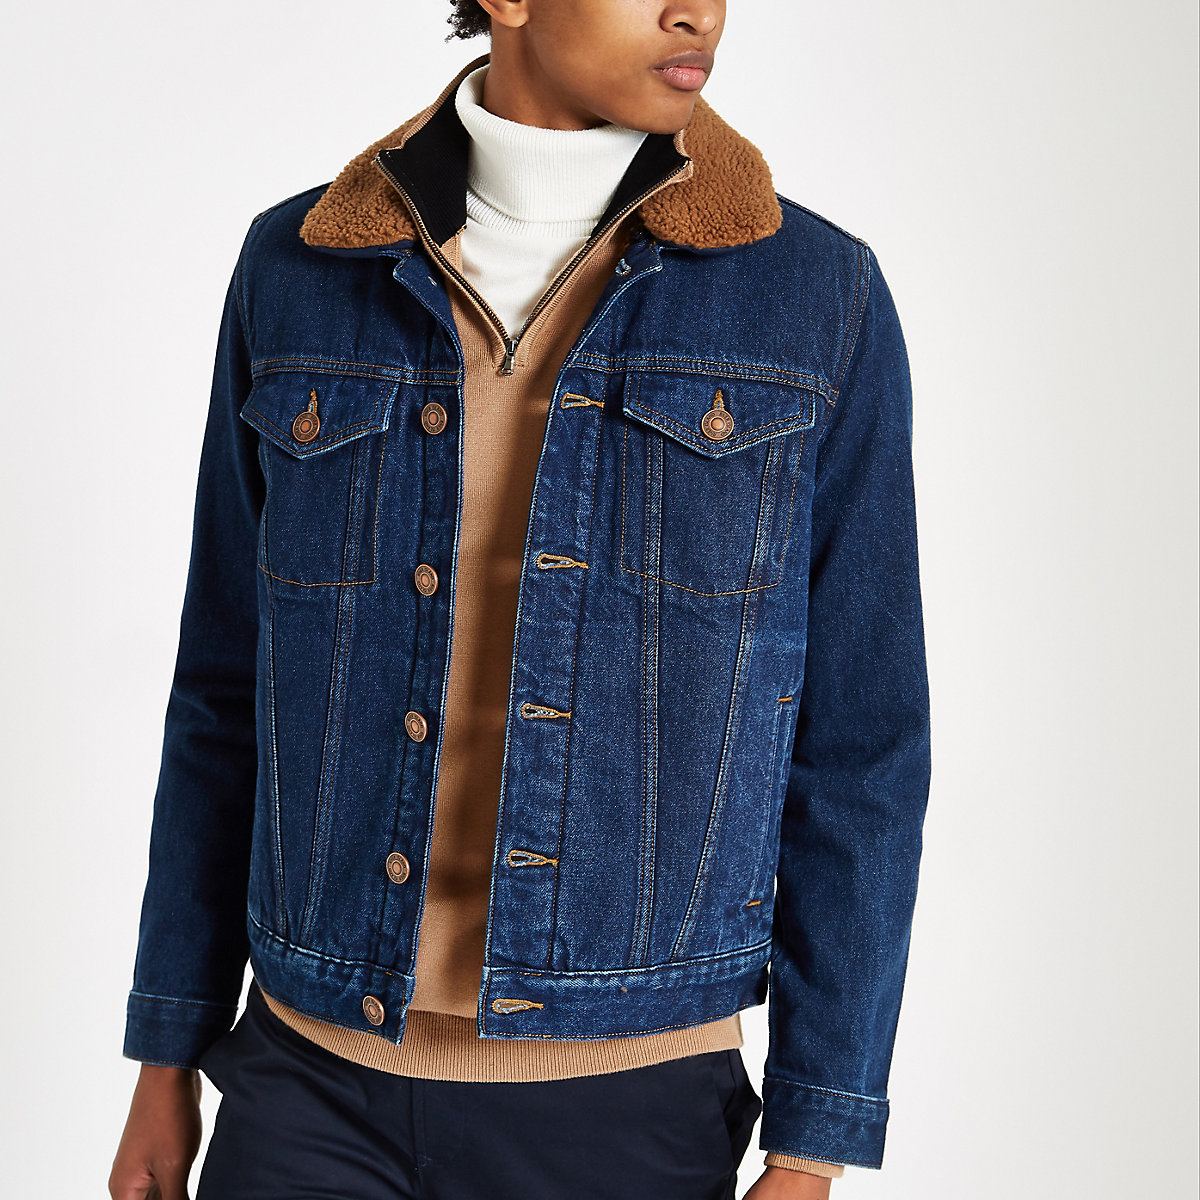 Dark blue fleece lined denim jacket